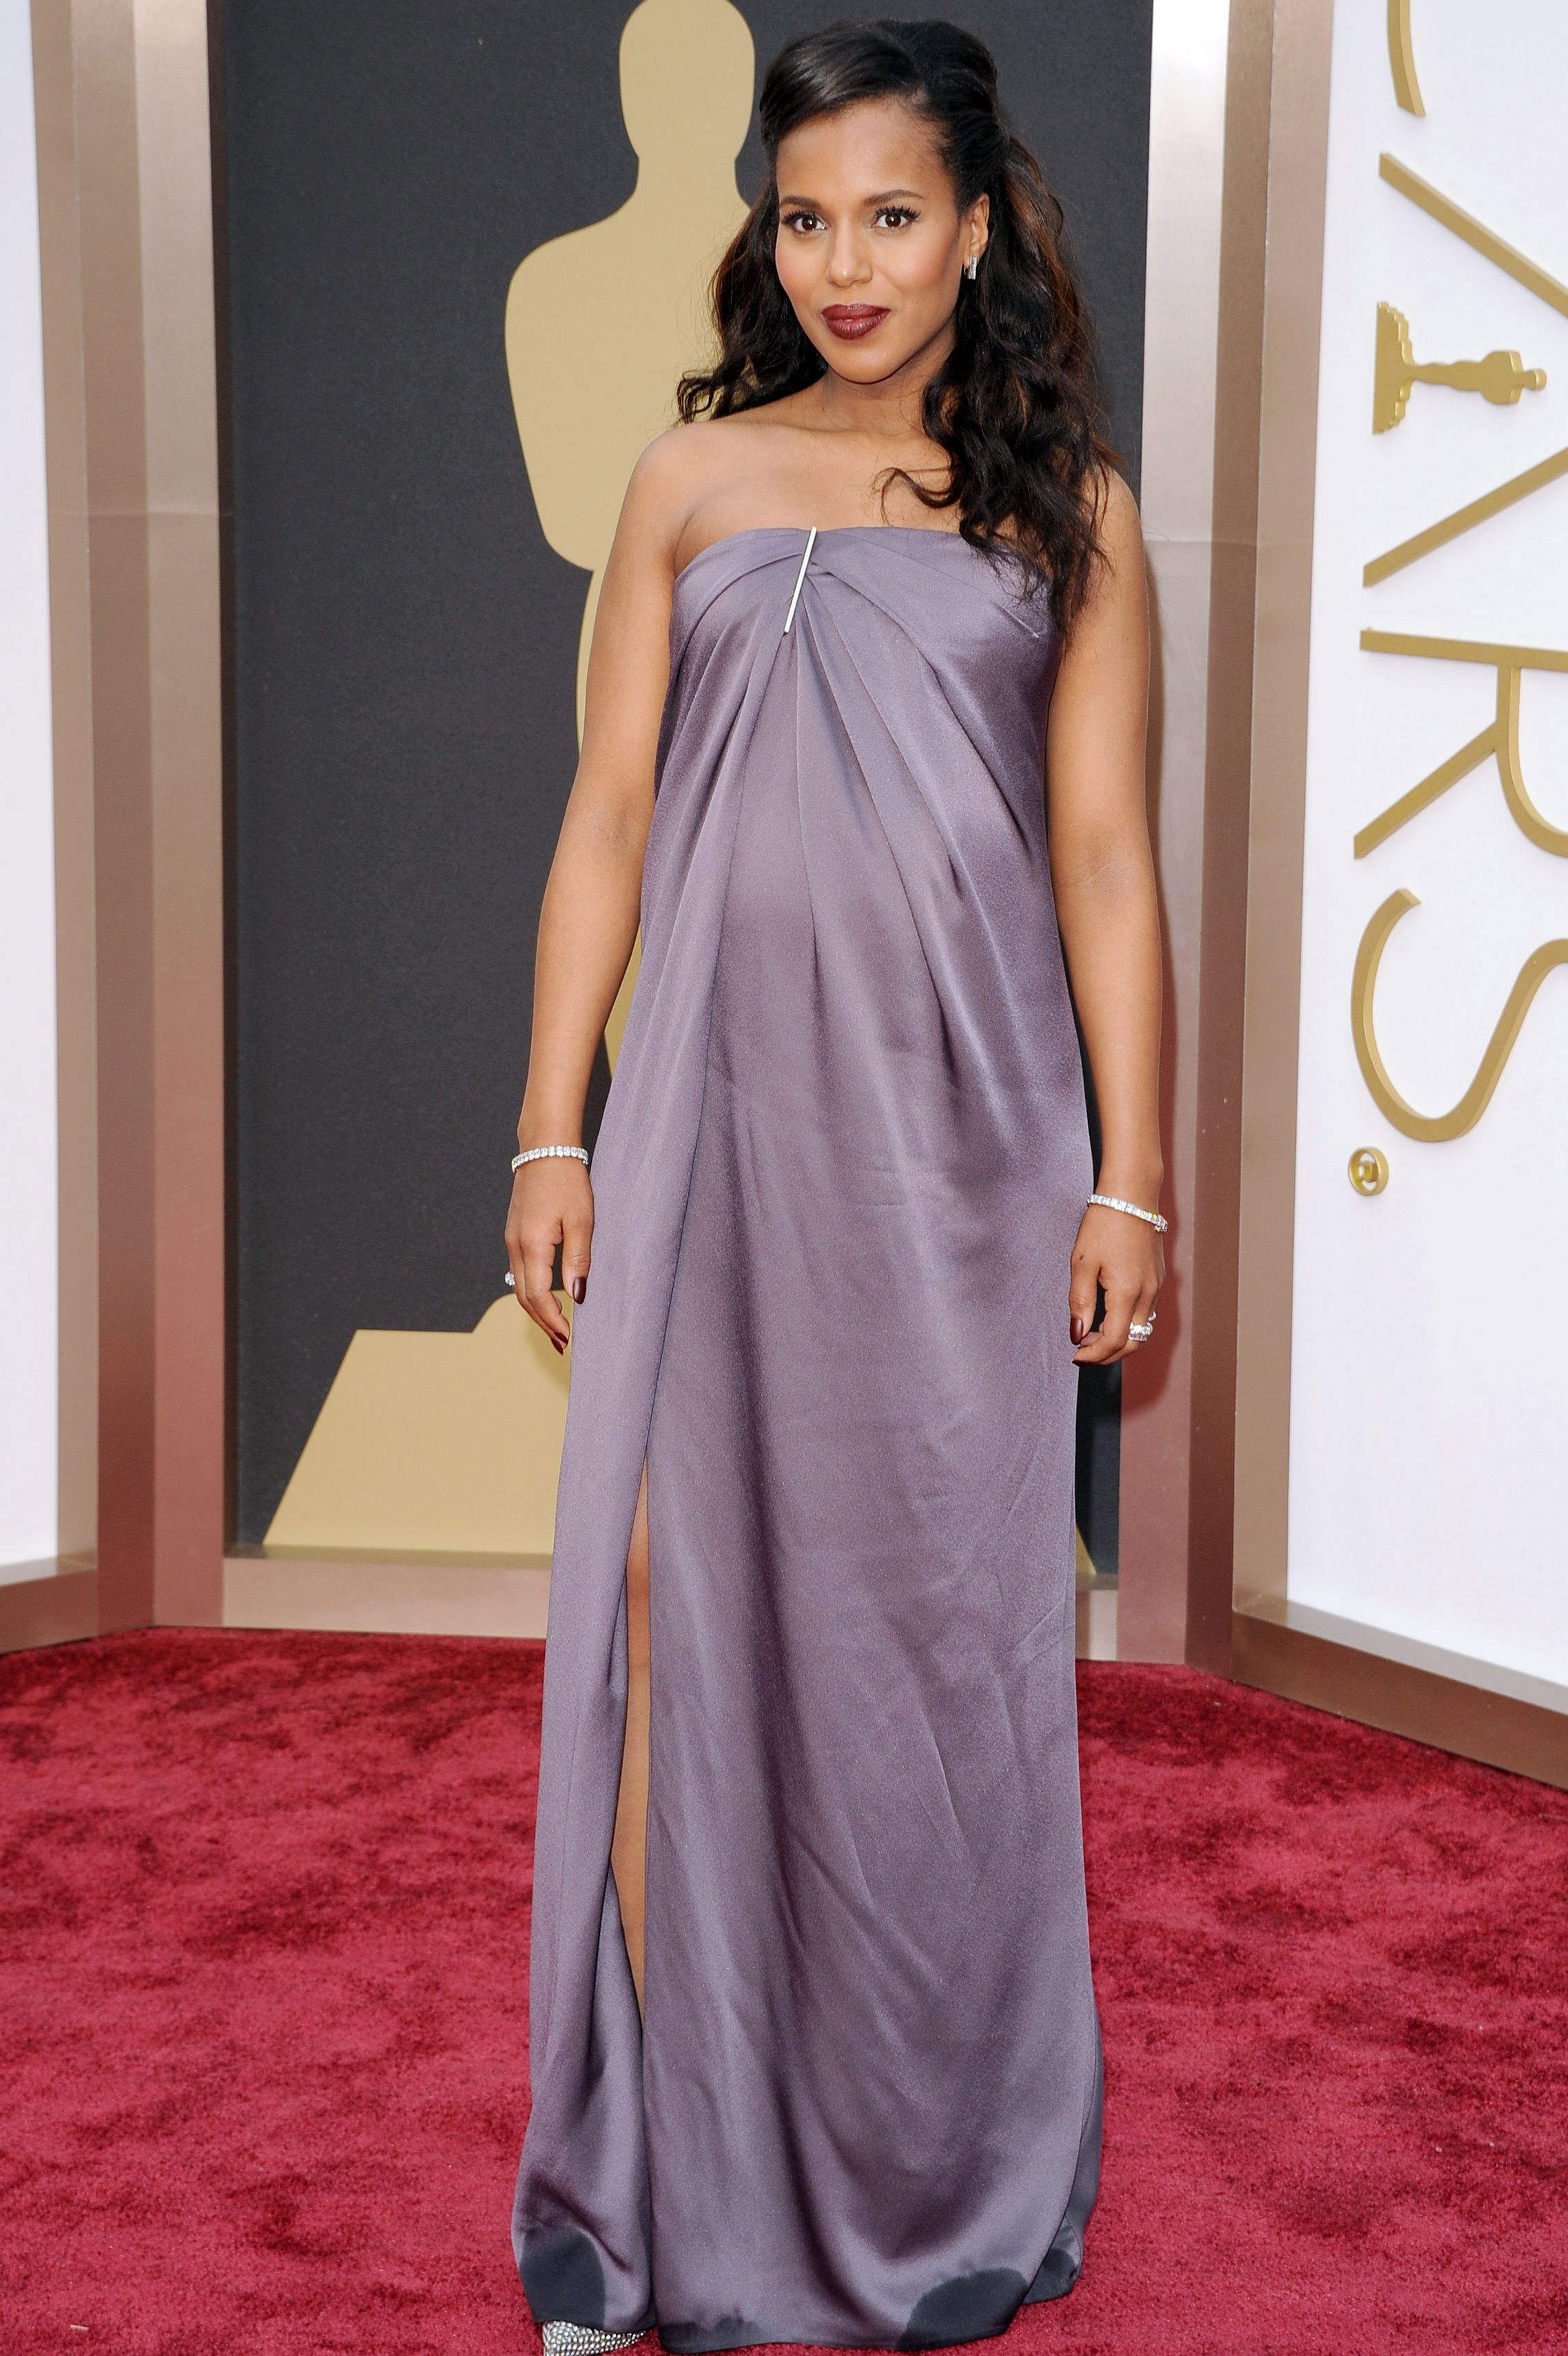 Kerry Washington, 2014 Have you seen a chicer pregnant woman than Kerry Washington at the 2014 Oscars in this strapless Jason Wu dress? Pregnancy glow is real.